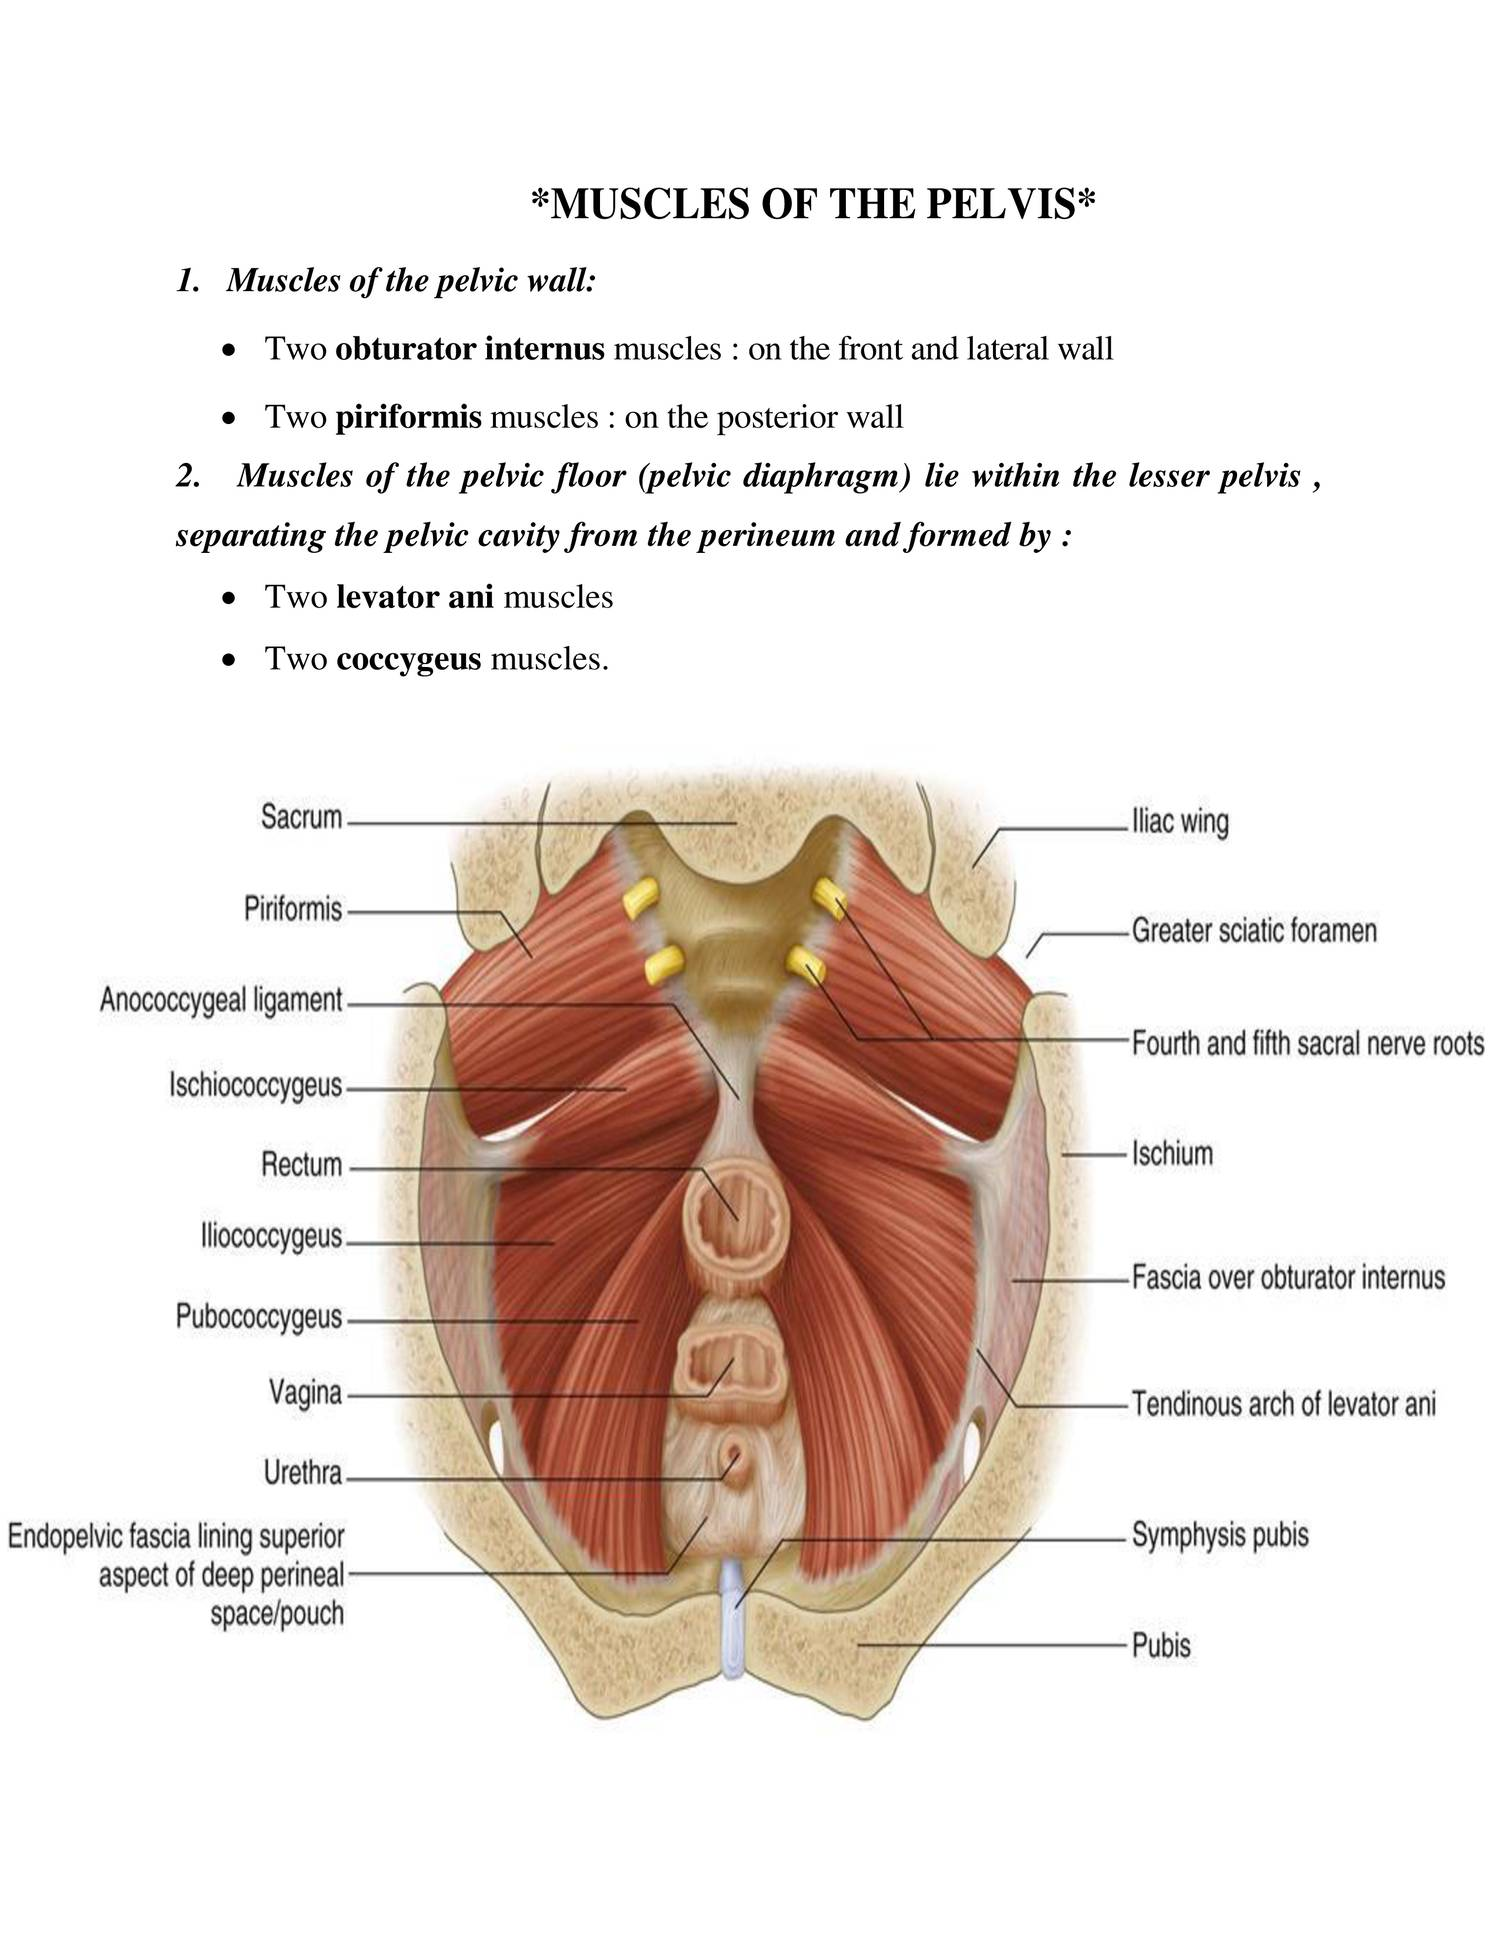 Anatomy muscles of pelvis.doc - DocDroid